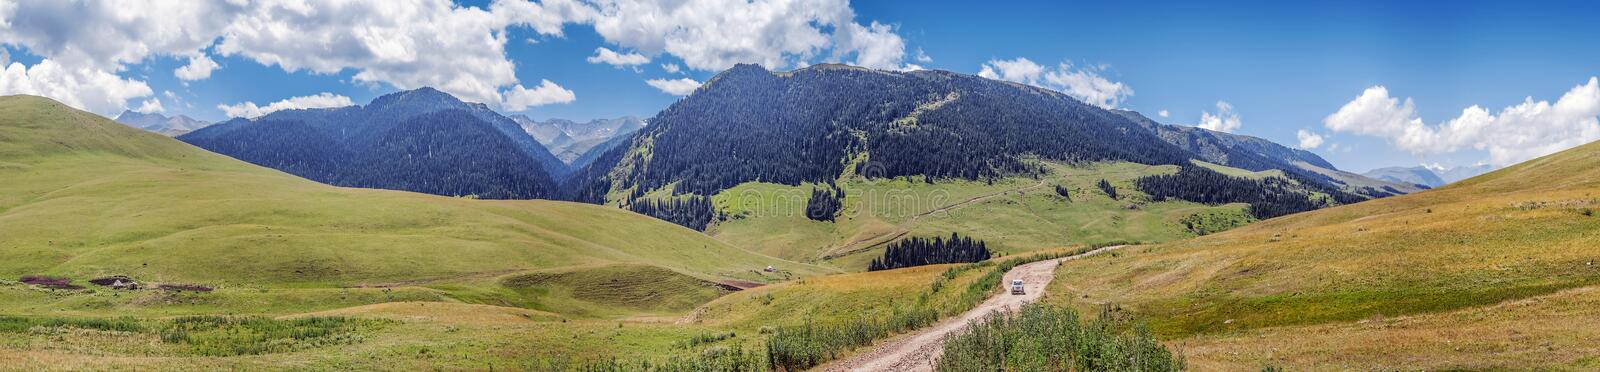 Mountain road on the plateau of Assy. Kazakhstan, Almaty region. stock images